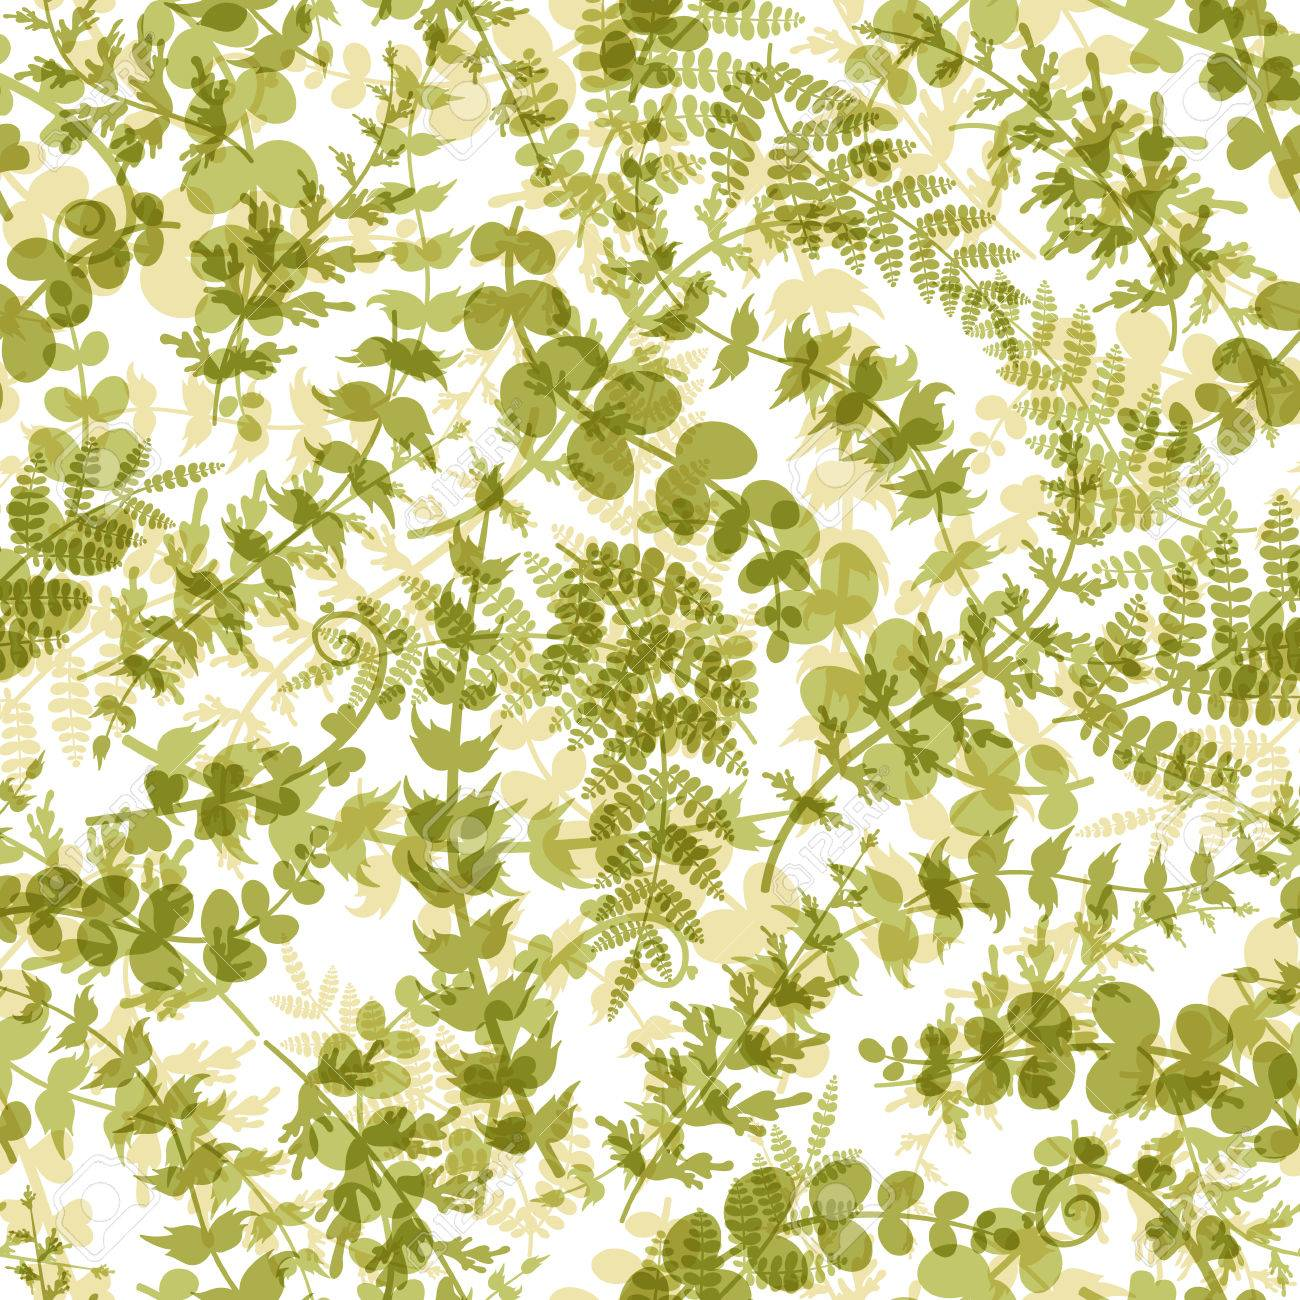 Seamless Plant Background Endless Pattern With Green Twigs And Leaves Silhouette Vector Illustration On